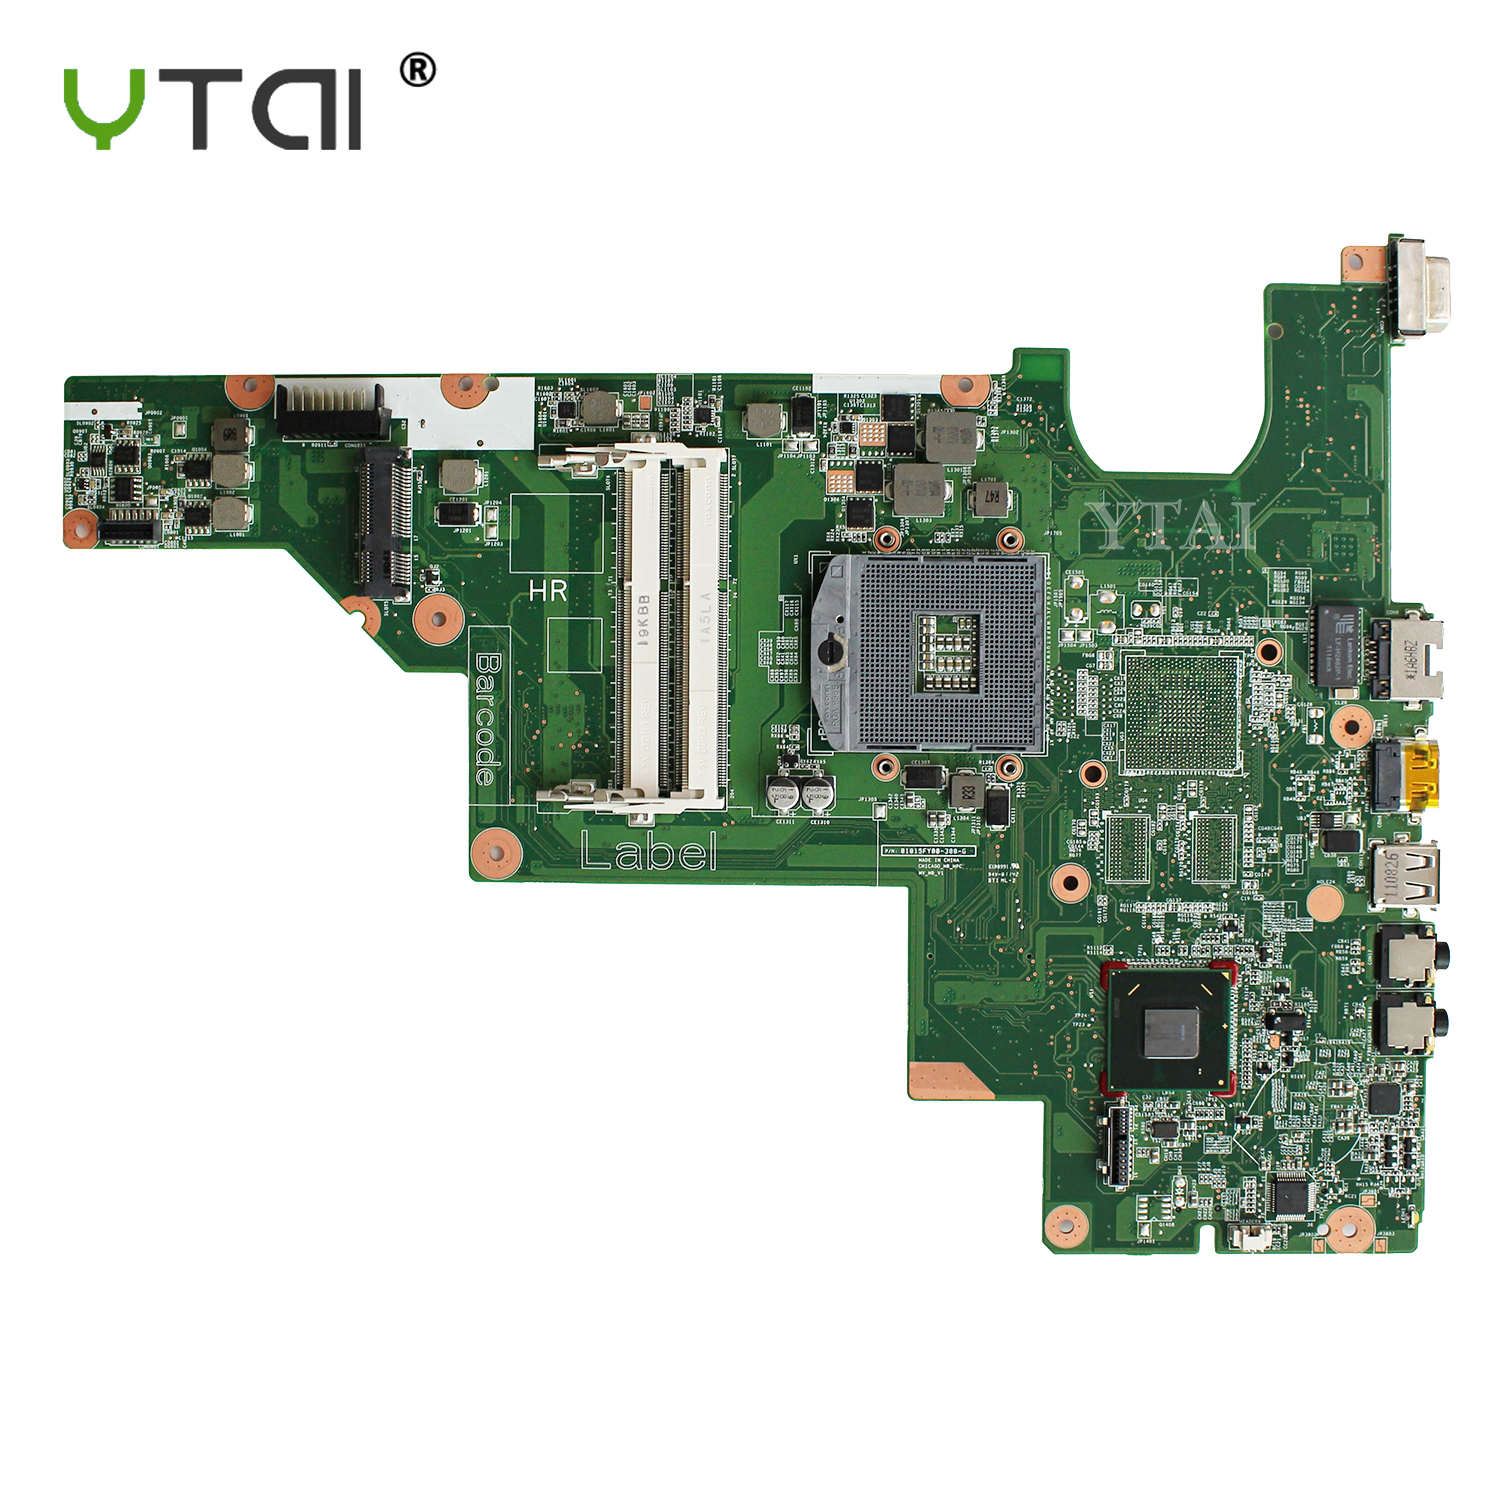 YTAI 646673-001 Mainboard for HP CQ43 CQ57 430 431 435 630 635 Laptop Motherboard DDR3 with HDMI original laptop motherboard for hp cq57 653985 001 15 6 laptop mainboard 100% full test